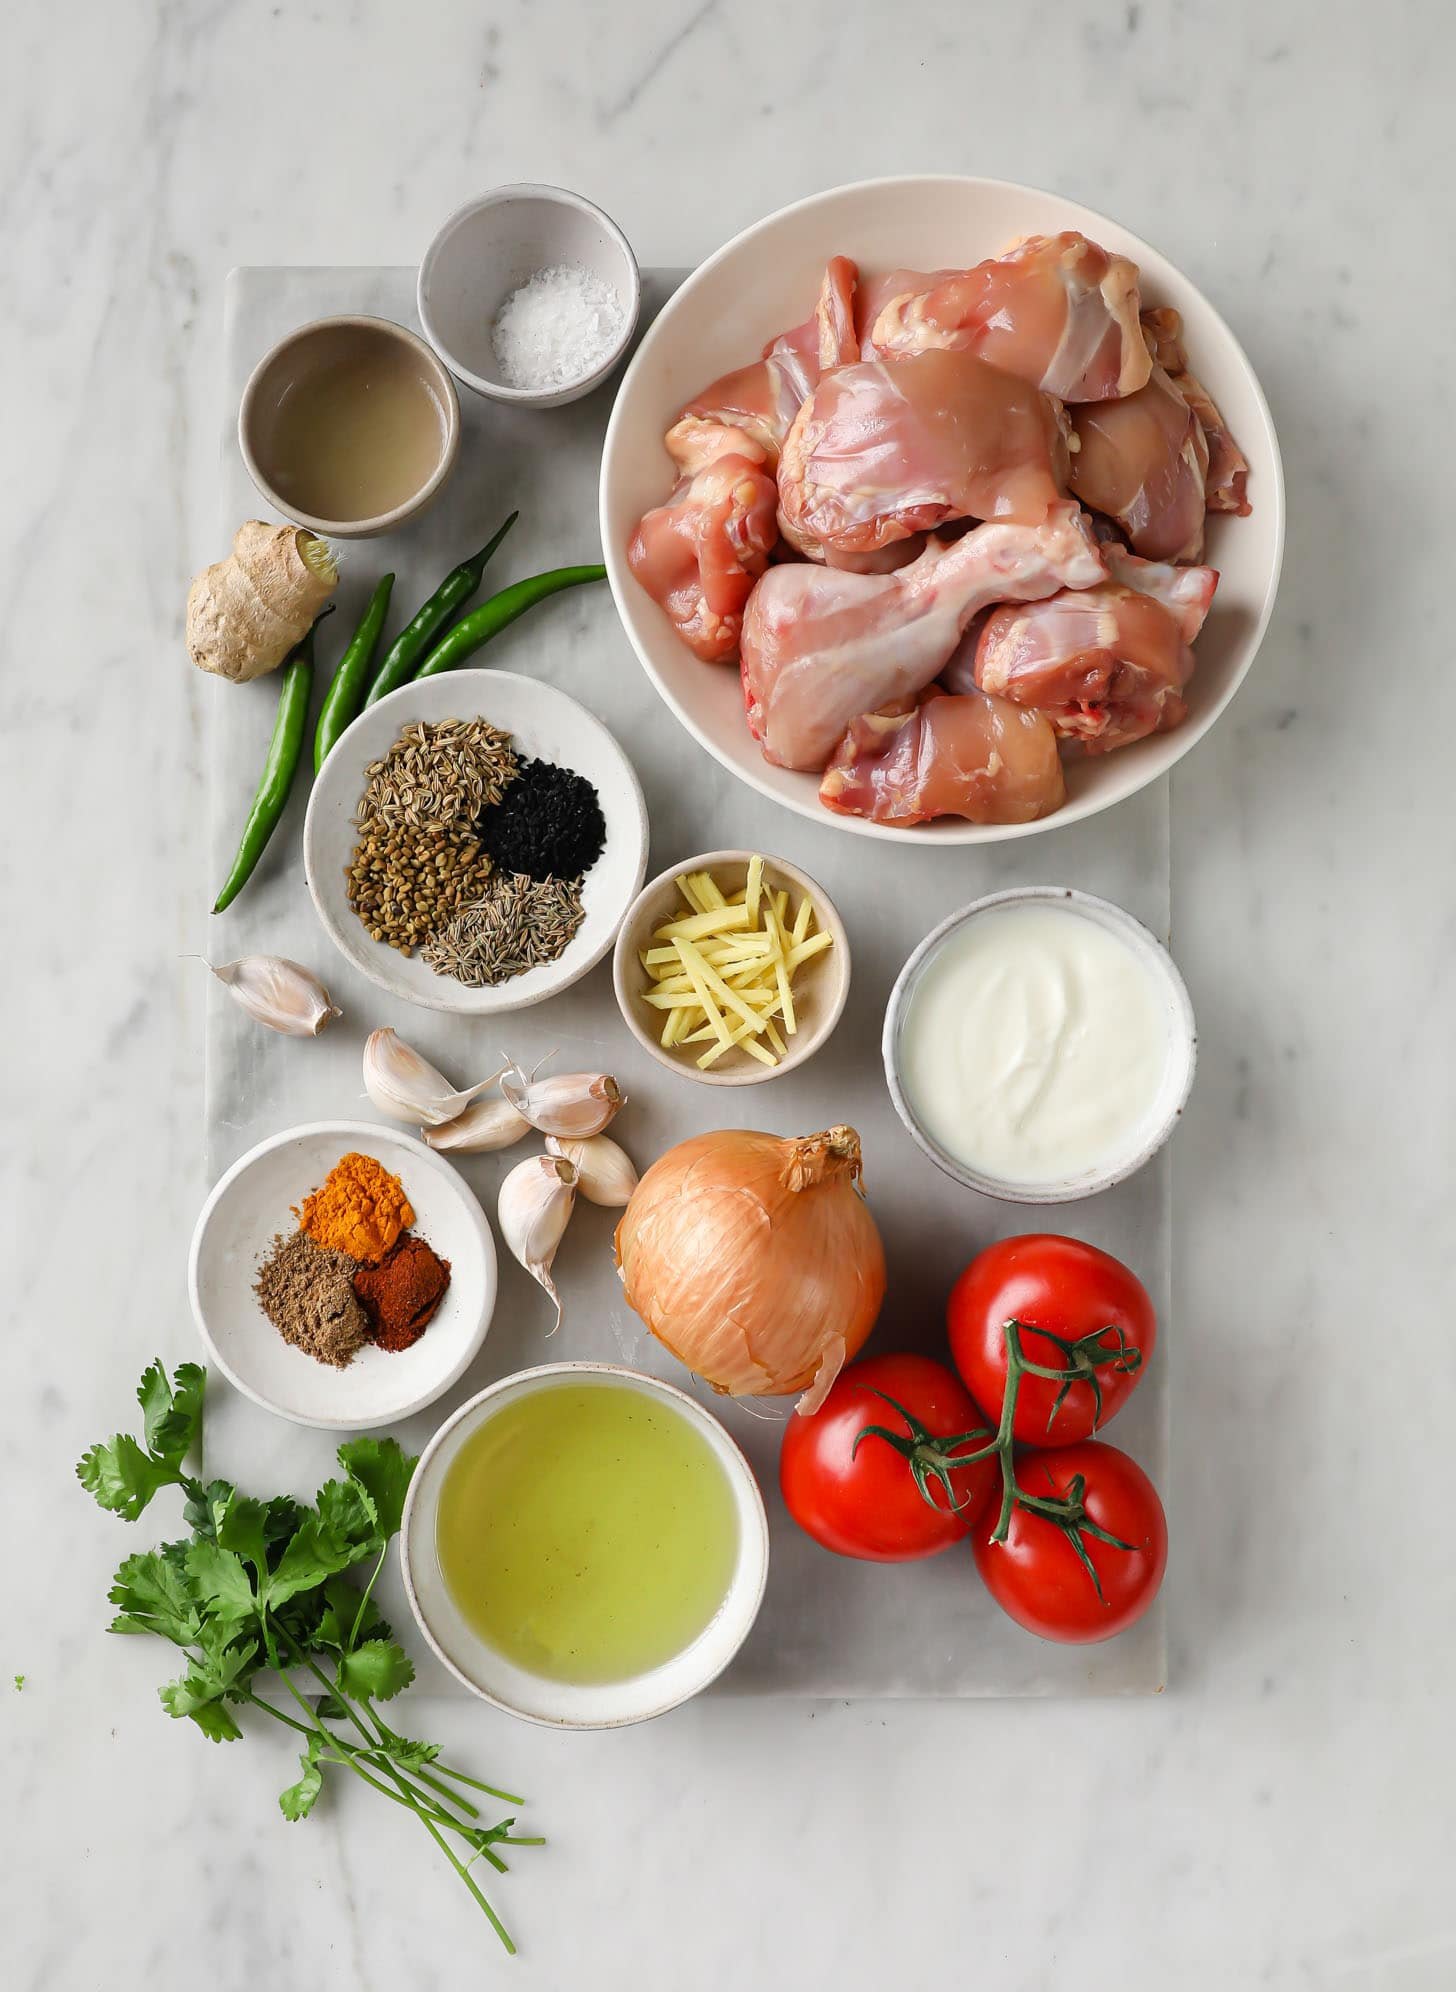 Ingredients for Achari Chicken including yogurt, tomatoes, onions, whole spices, ground spices, garlic and ginger placed on a marbled surface